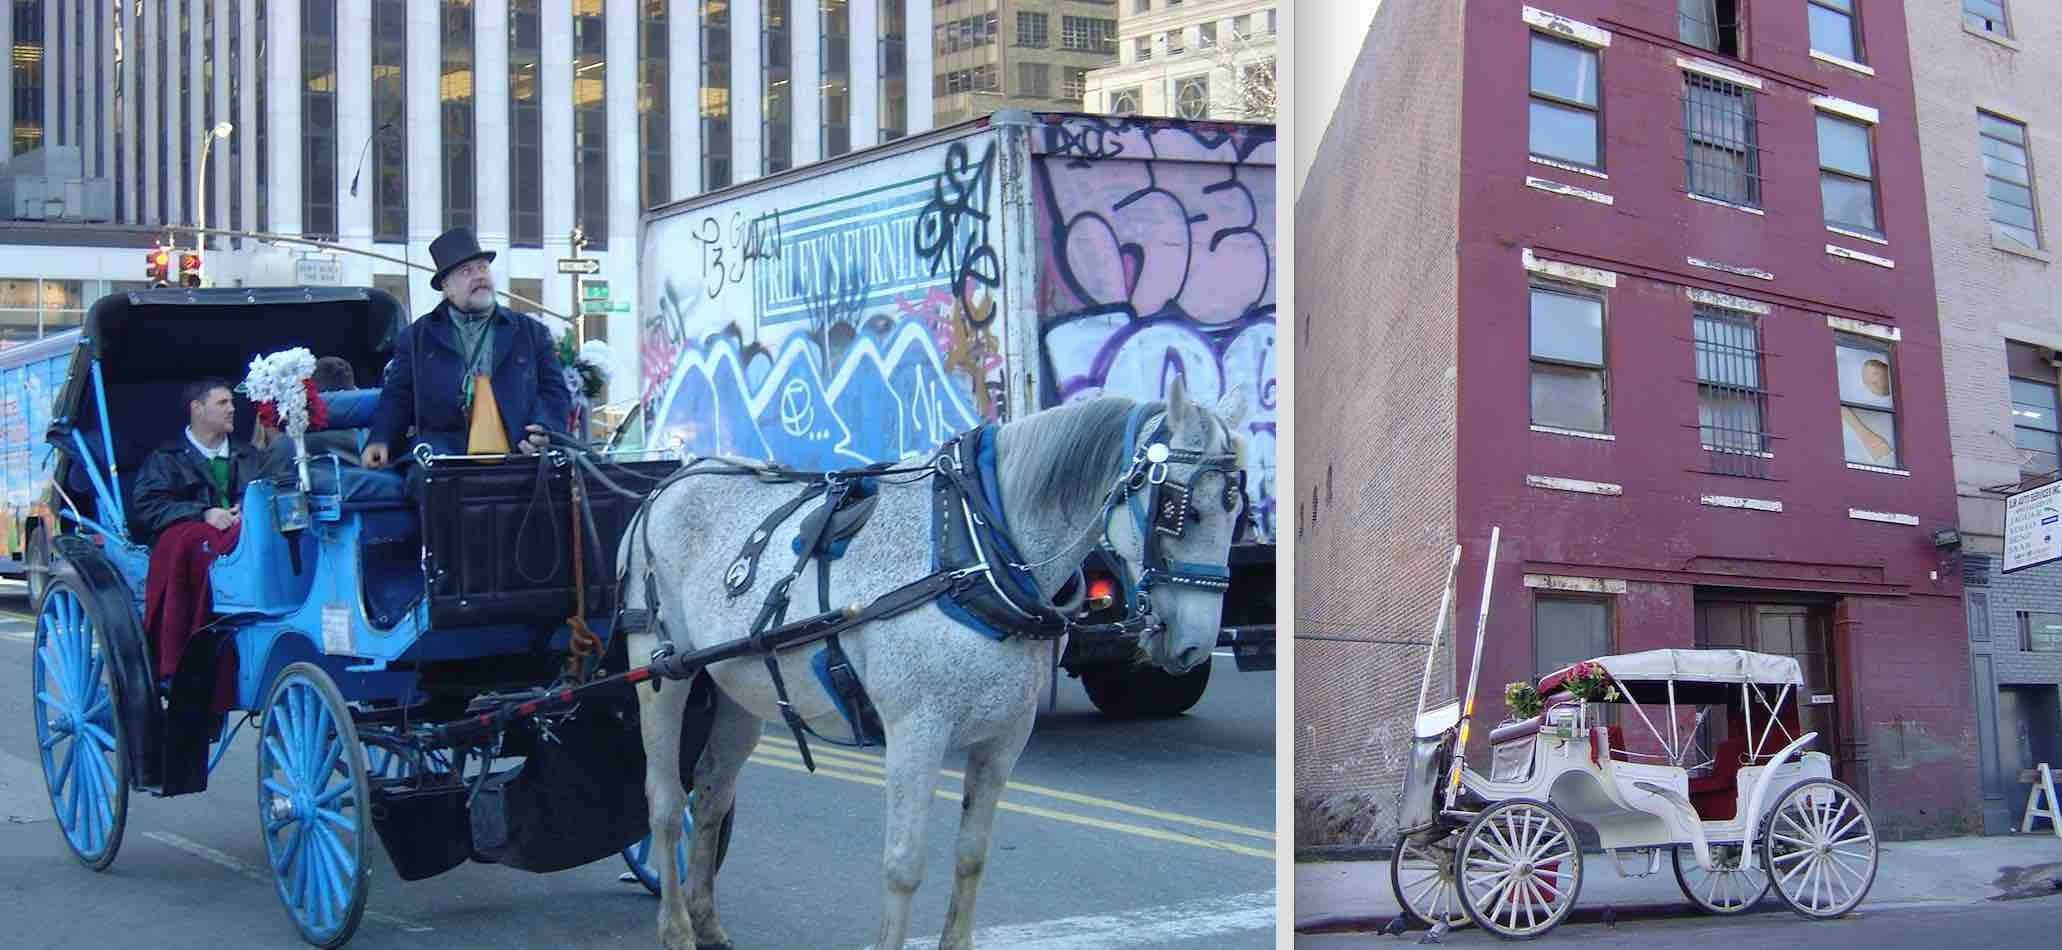 The horses who pull carriages in NYC are housed in multi-story buildings after working in midtown. NYC has no pasture where the horses can graze and interact with other horses.